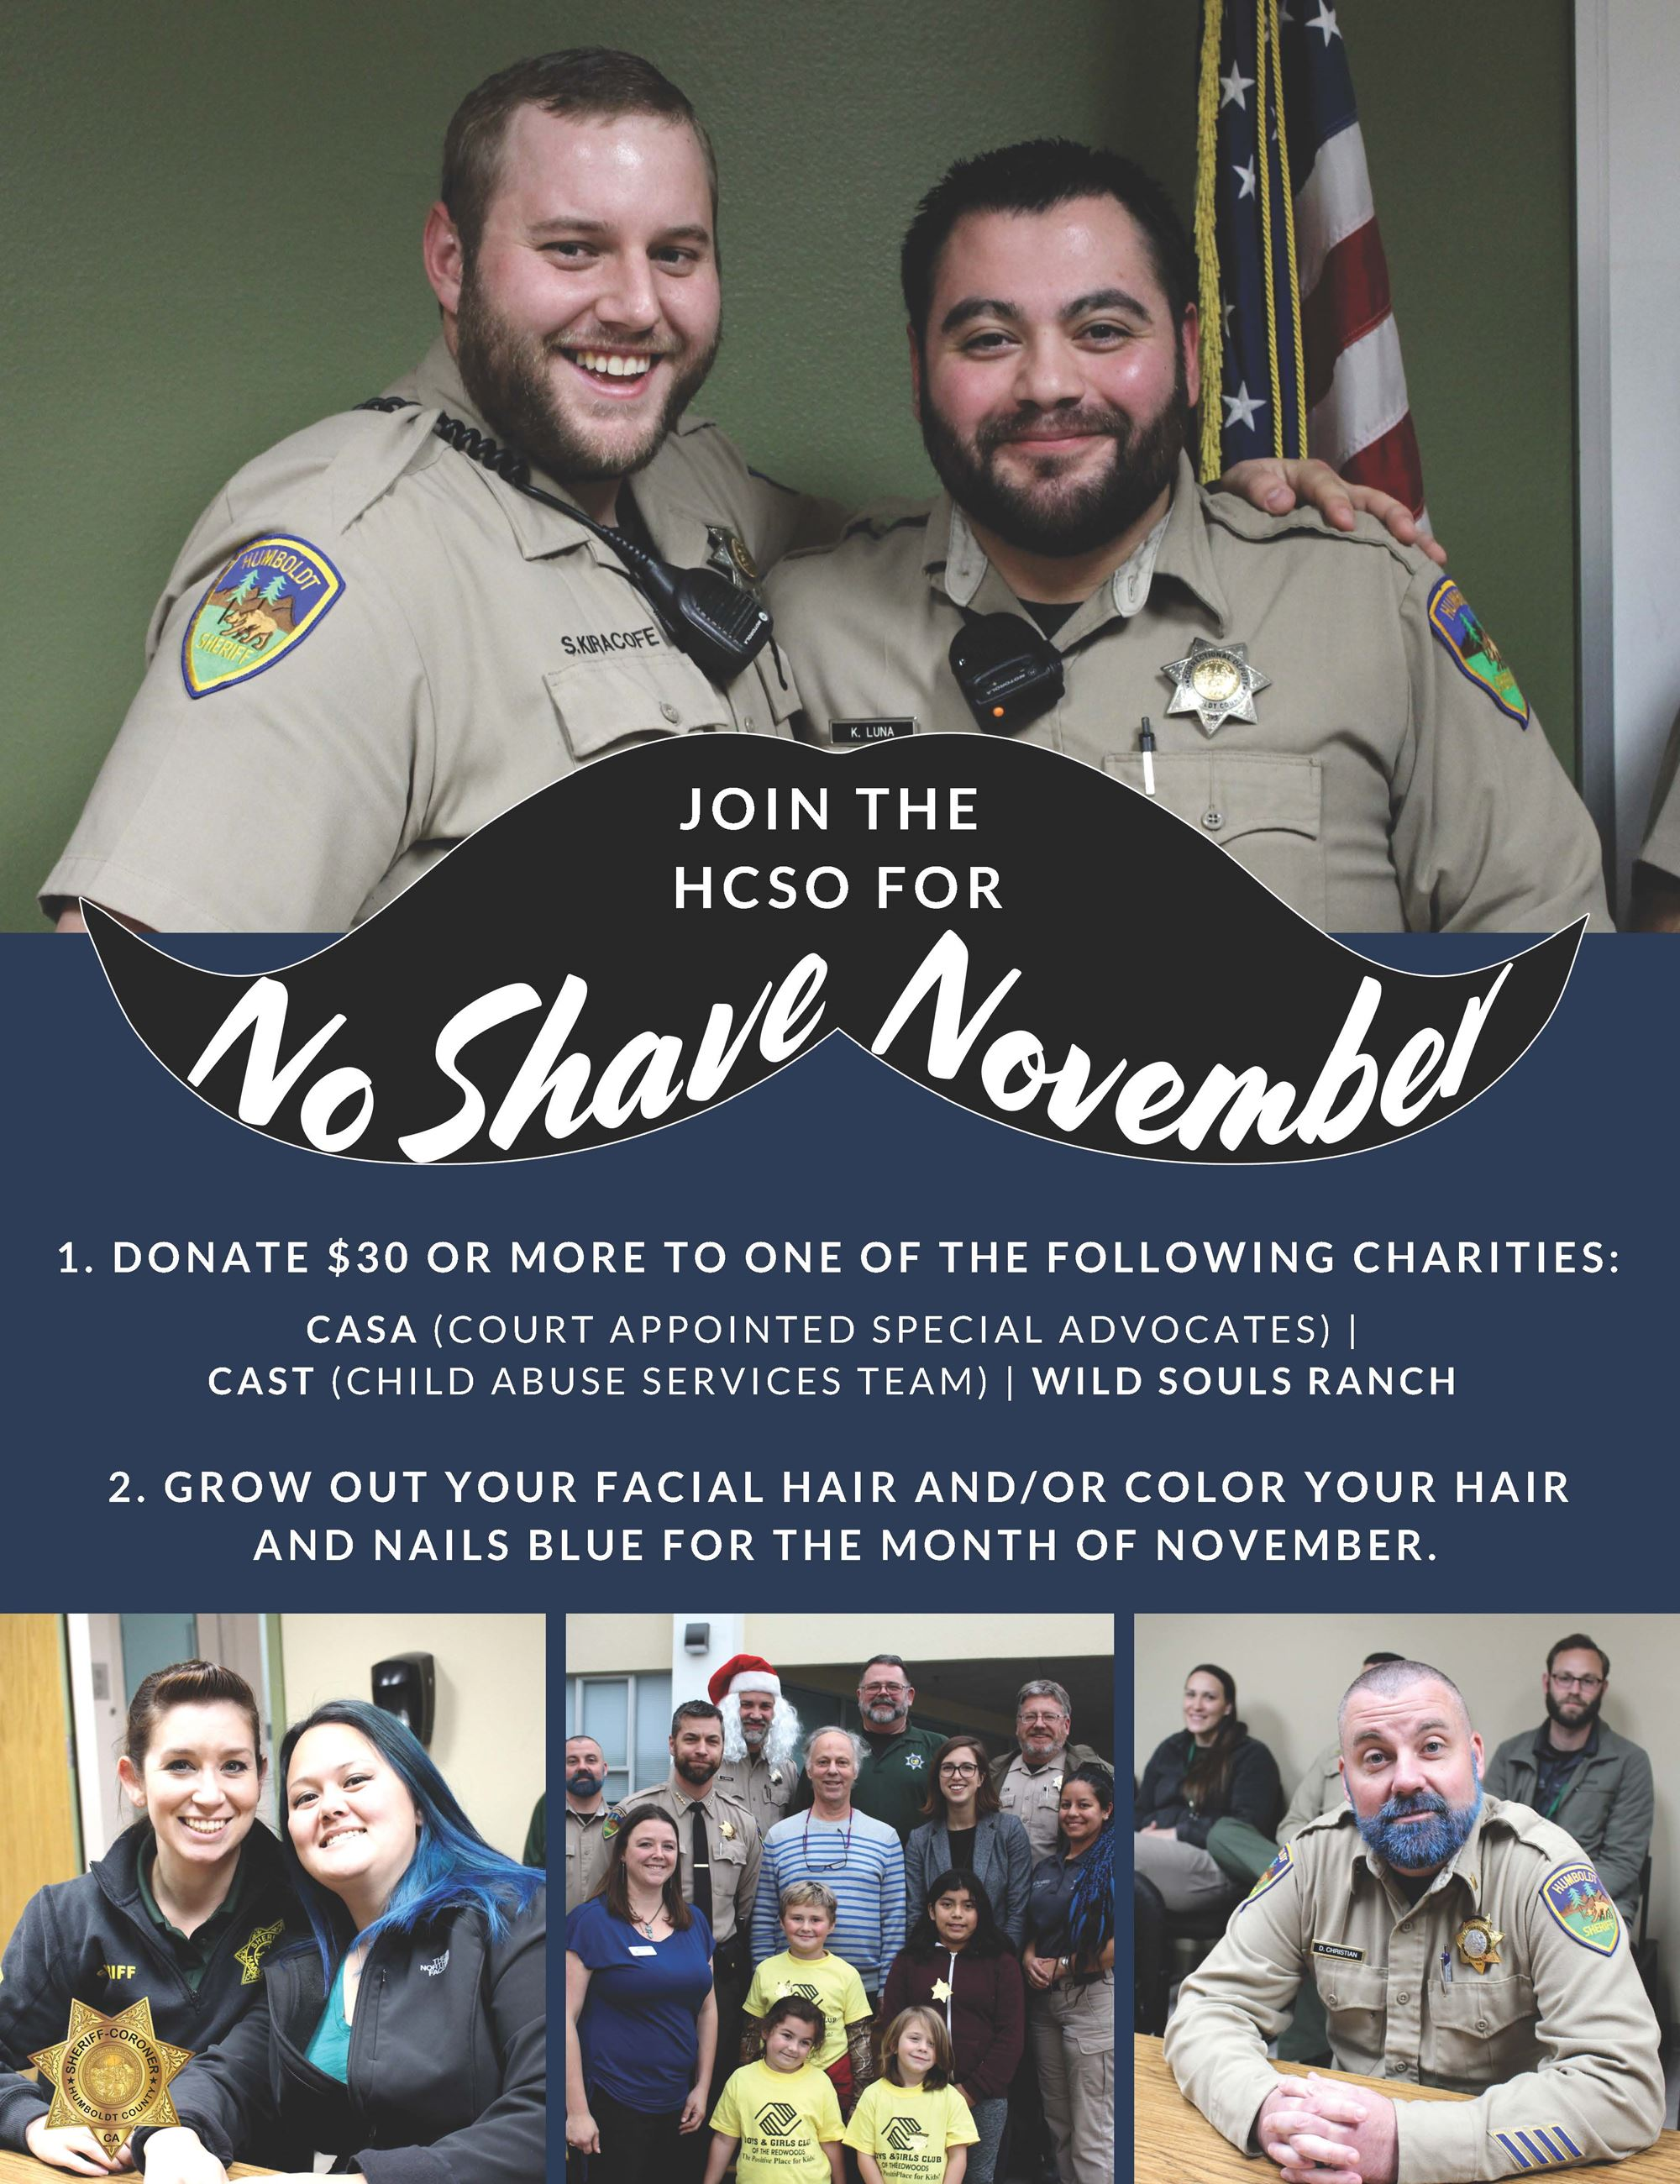 Join the HCSO for No Shave November! Donate $30 or more to one of the following charities: CASA (Cou